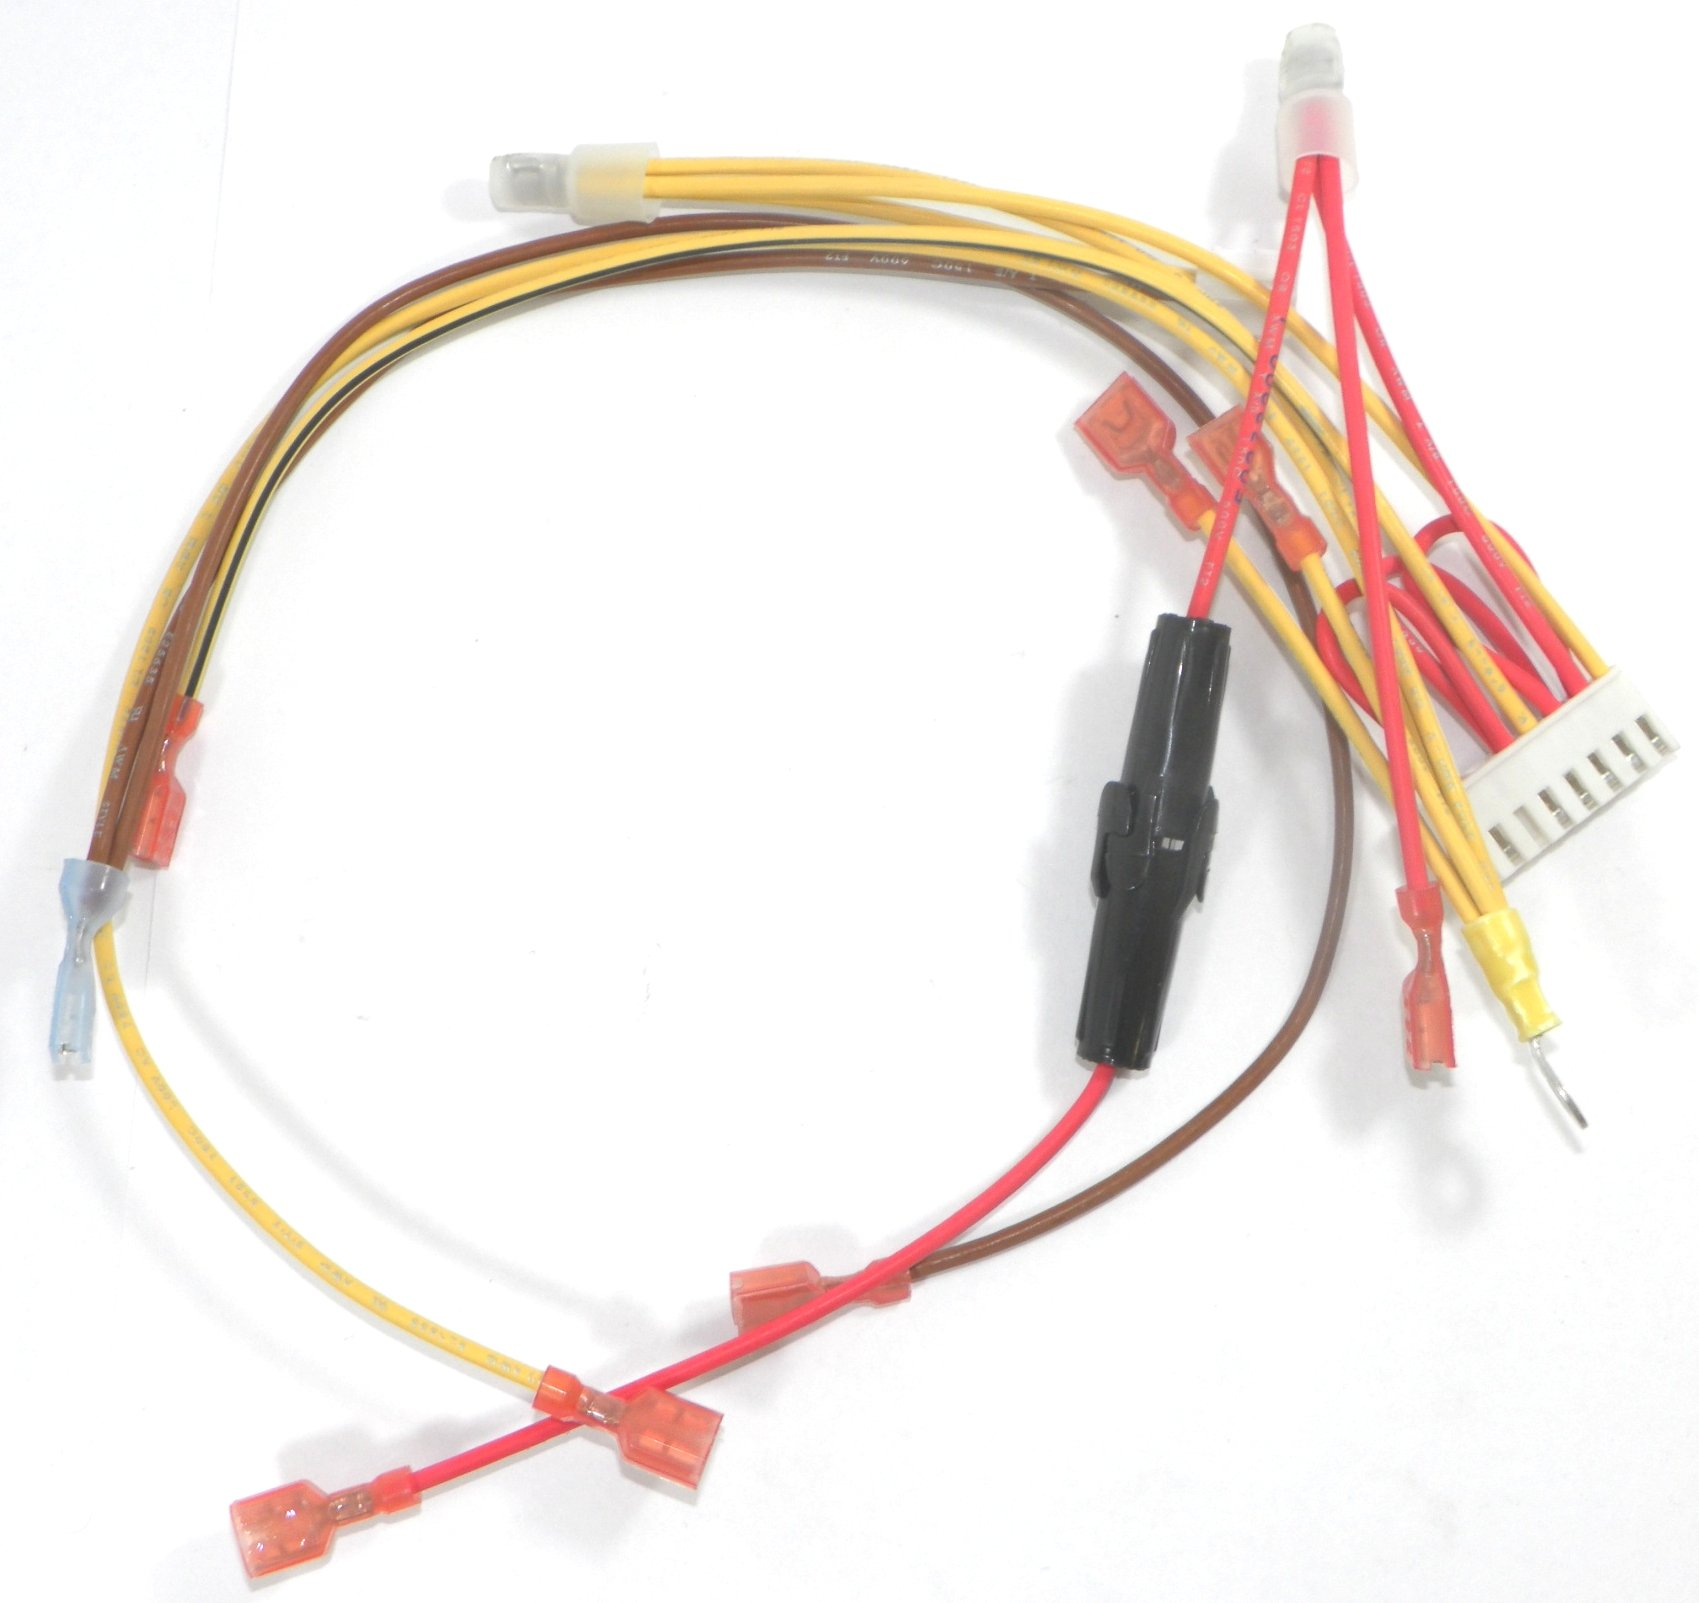 Jandy E0273200 Power Interface Controller Harness for Legacy LRZM Heater